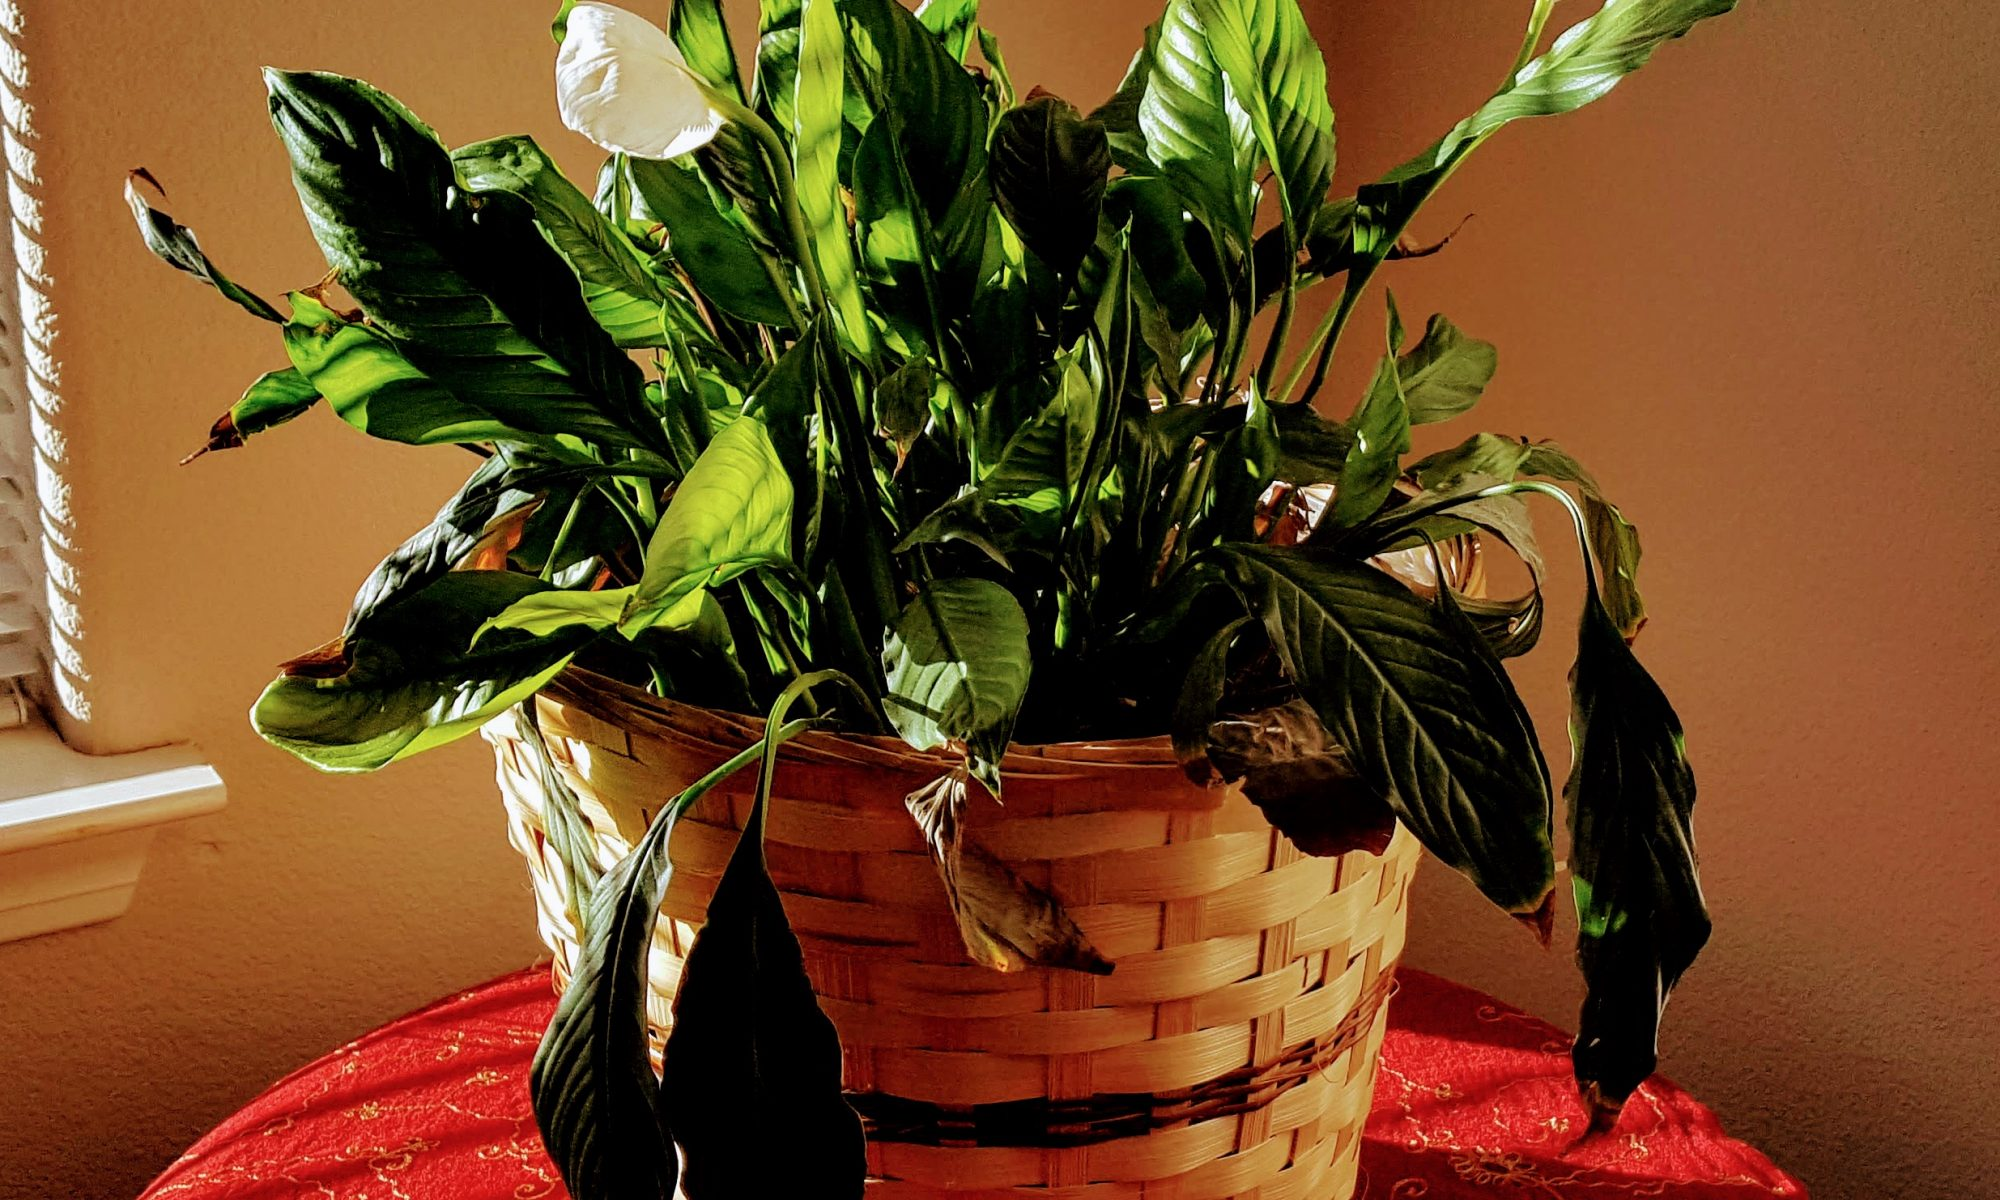 Picture of the peace lily in bloom